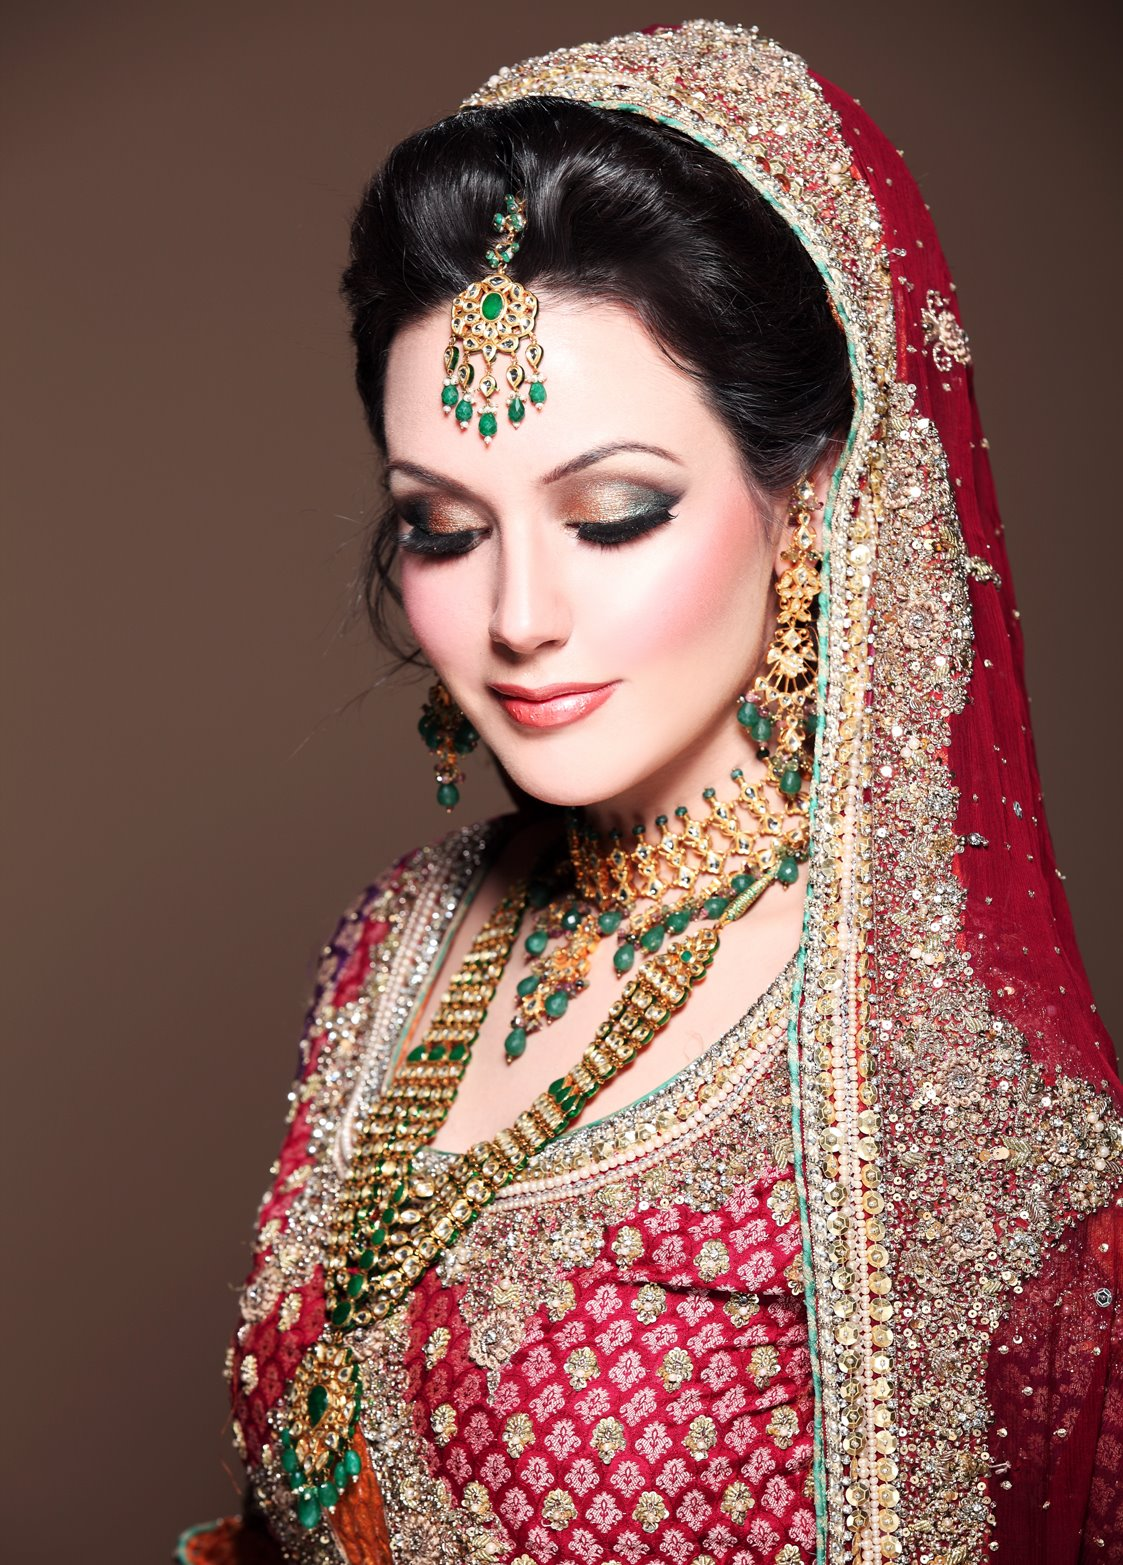 Bridal Makeup Salon Bollywood Makeup Artist In Mumbai Top Best Celebrity Make